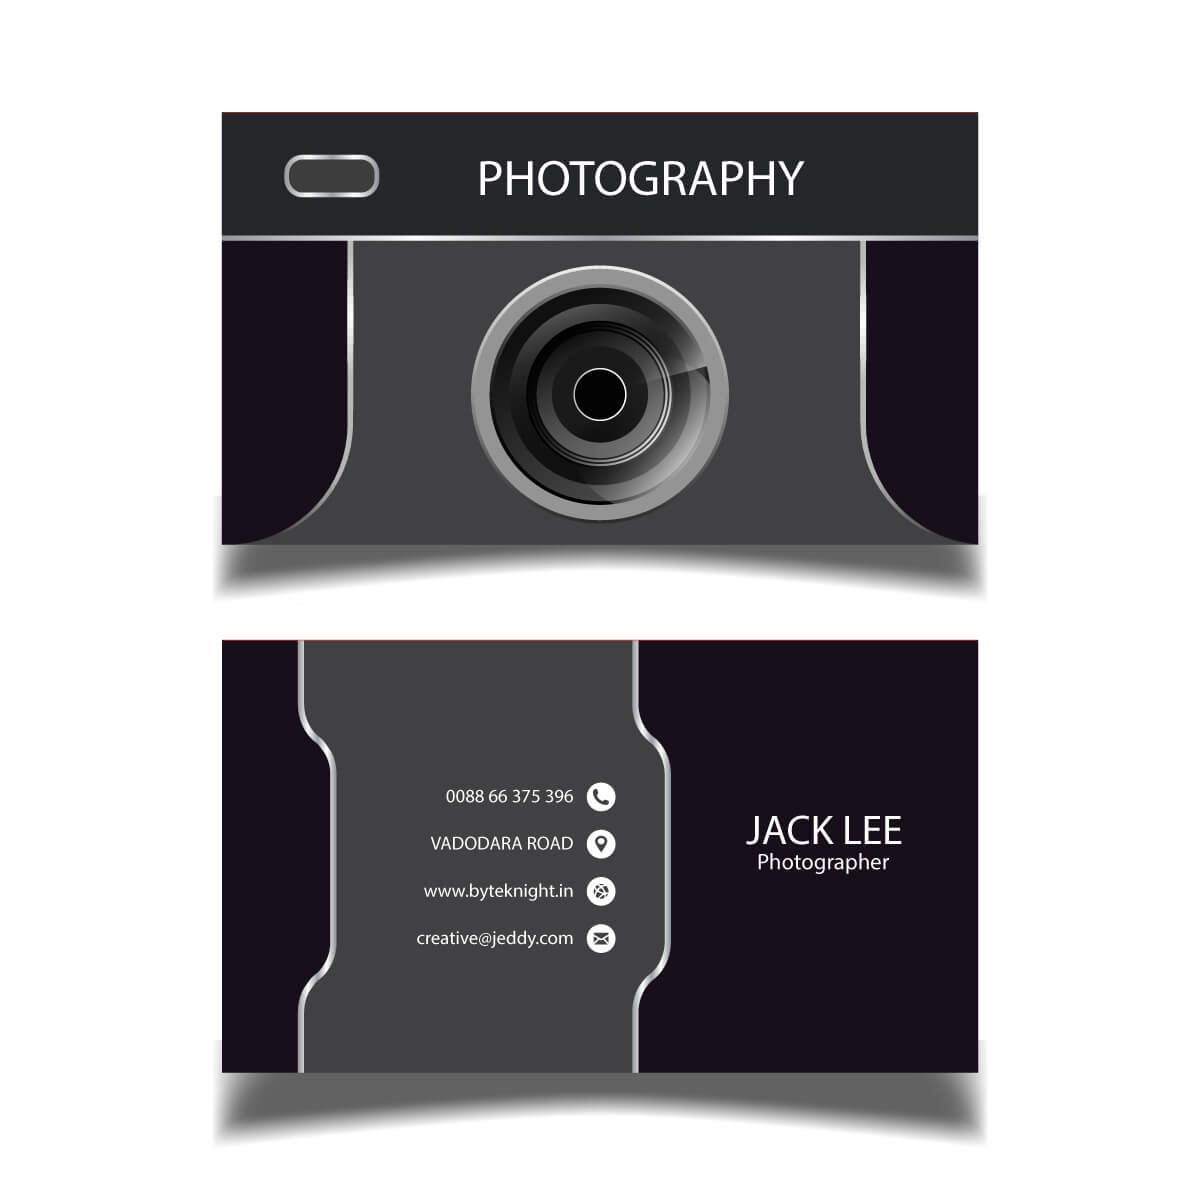 Photography Visiting Card Vc125 Bk Designs In 2021 Visiting Card Design Card Photography Photography Business Cards